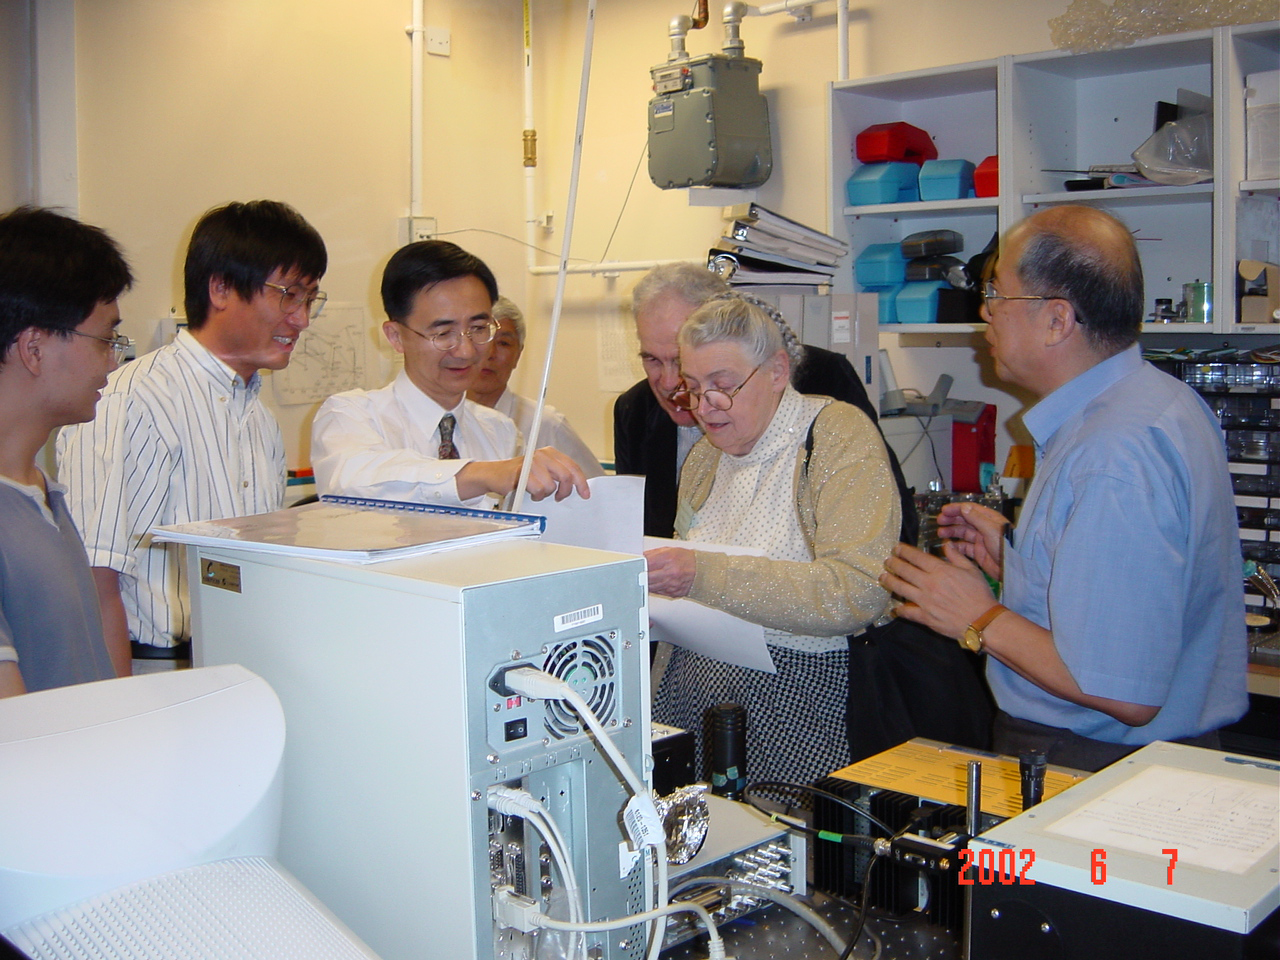 Prof Mildred Dresselhaus from the Massachusetts Institute of Technology, a renowned physicist and one of the pioneers in carbon nanotube research, and her husband, visit Prof Tang